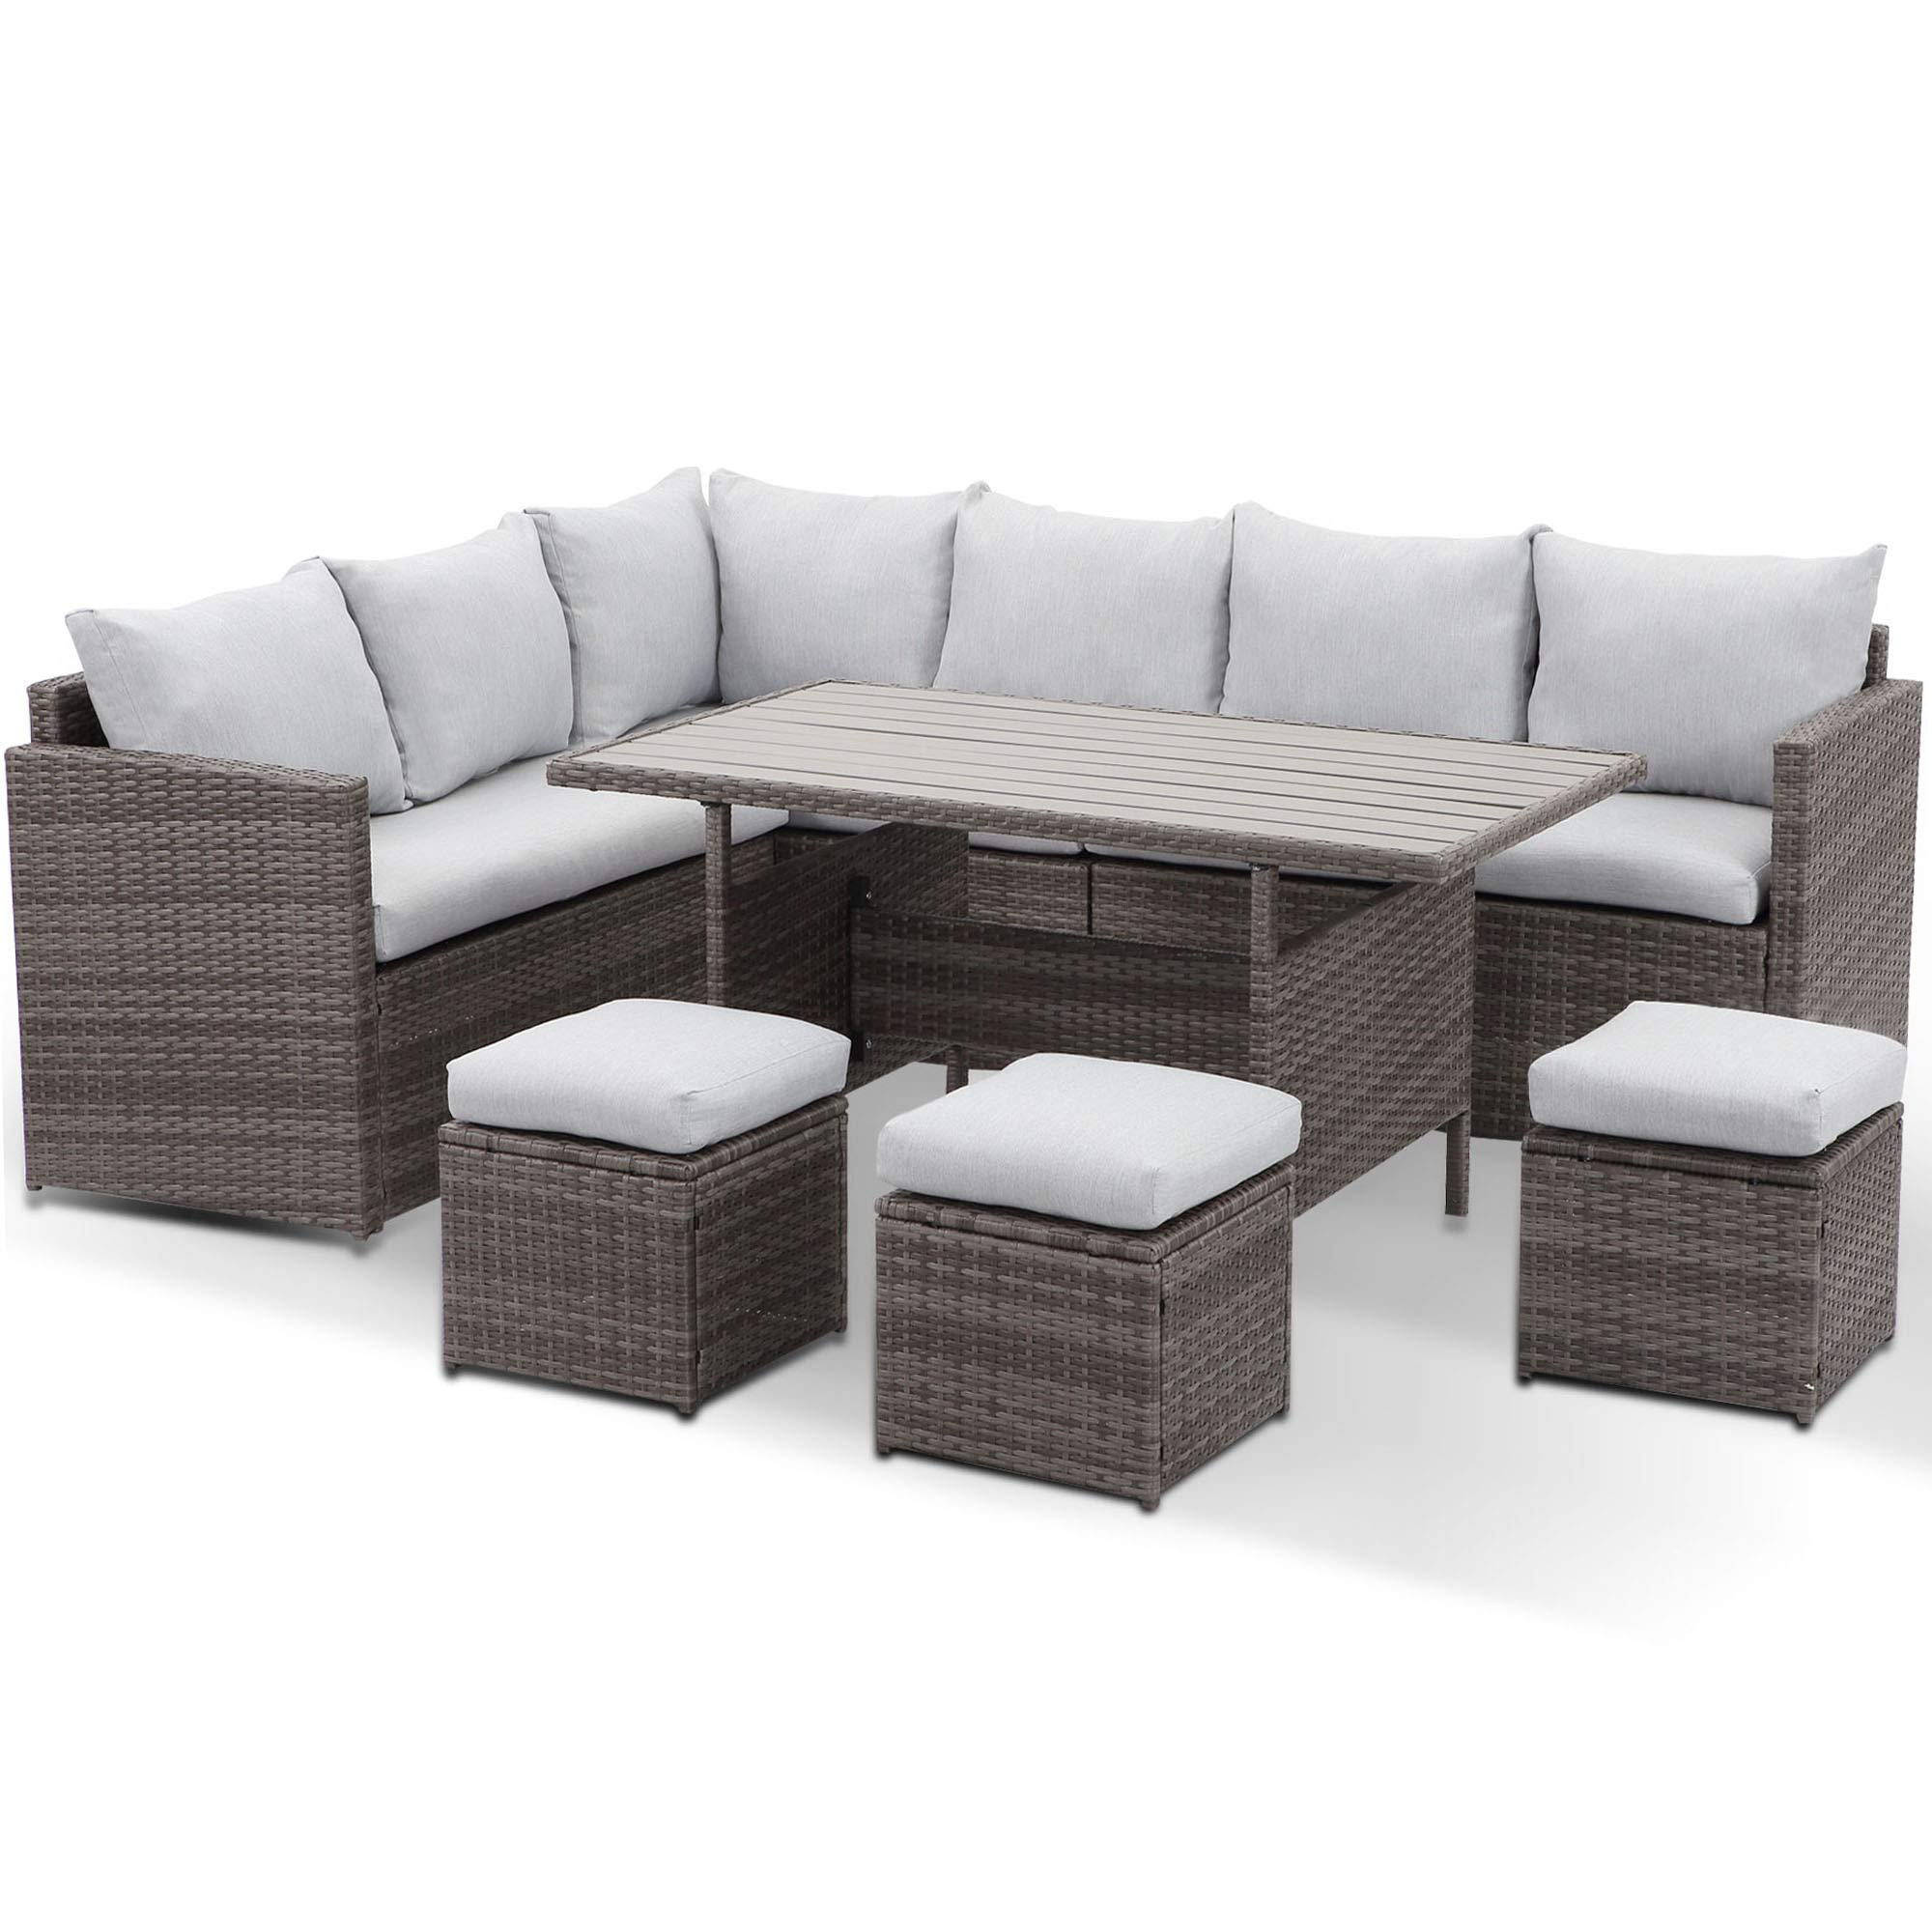 Wisteria Lane Patio Furniture Set 7 Piece Outdoor Dining Sectional Sofa Couch With Dining Table And Chair All Weather Deck Wicker Conversation Set With Cushion Grey Buy Online In Mongolia At Mongolia Desertcart Com Productid